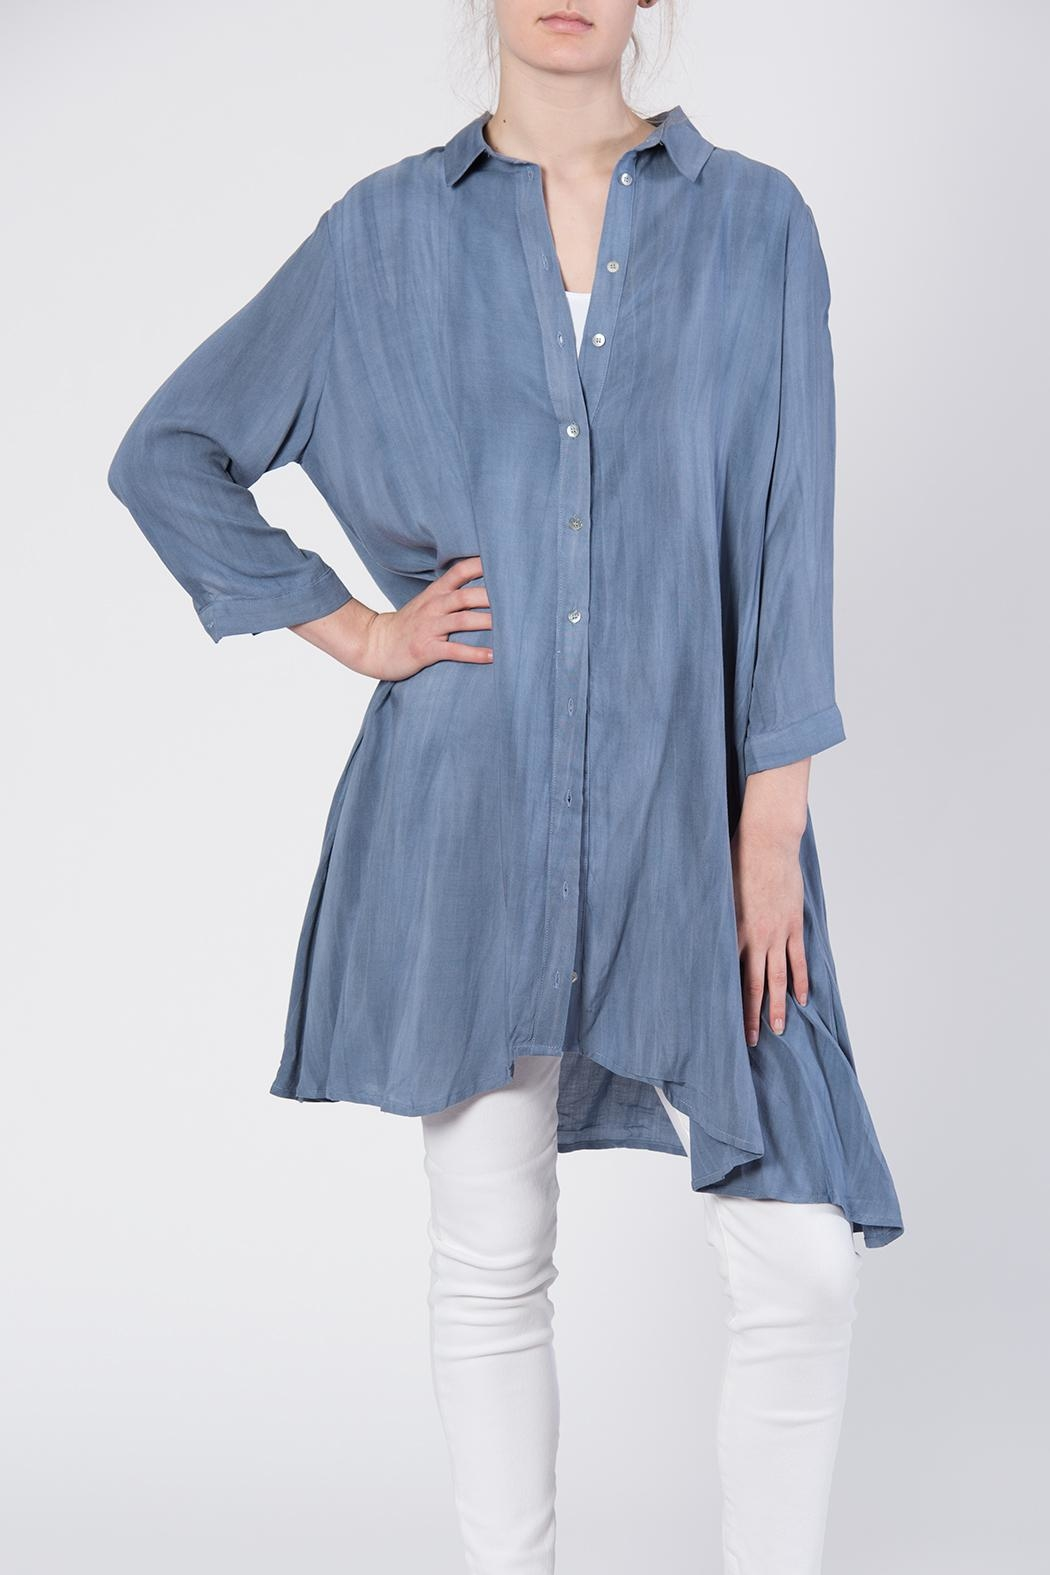 annabelle Button Front Tunic Top - Front Cropped Image